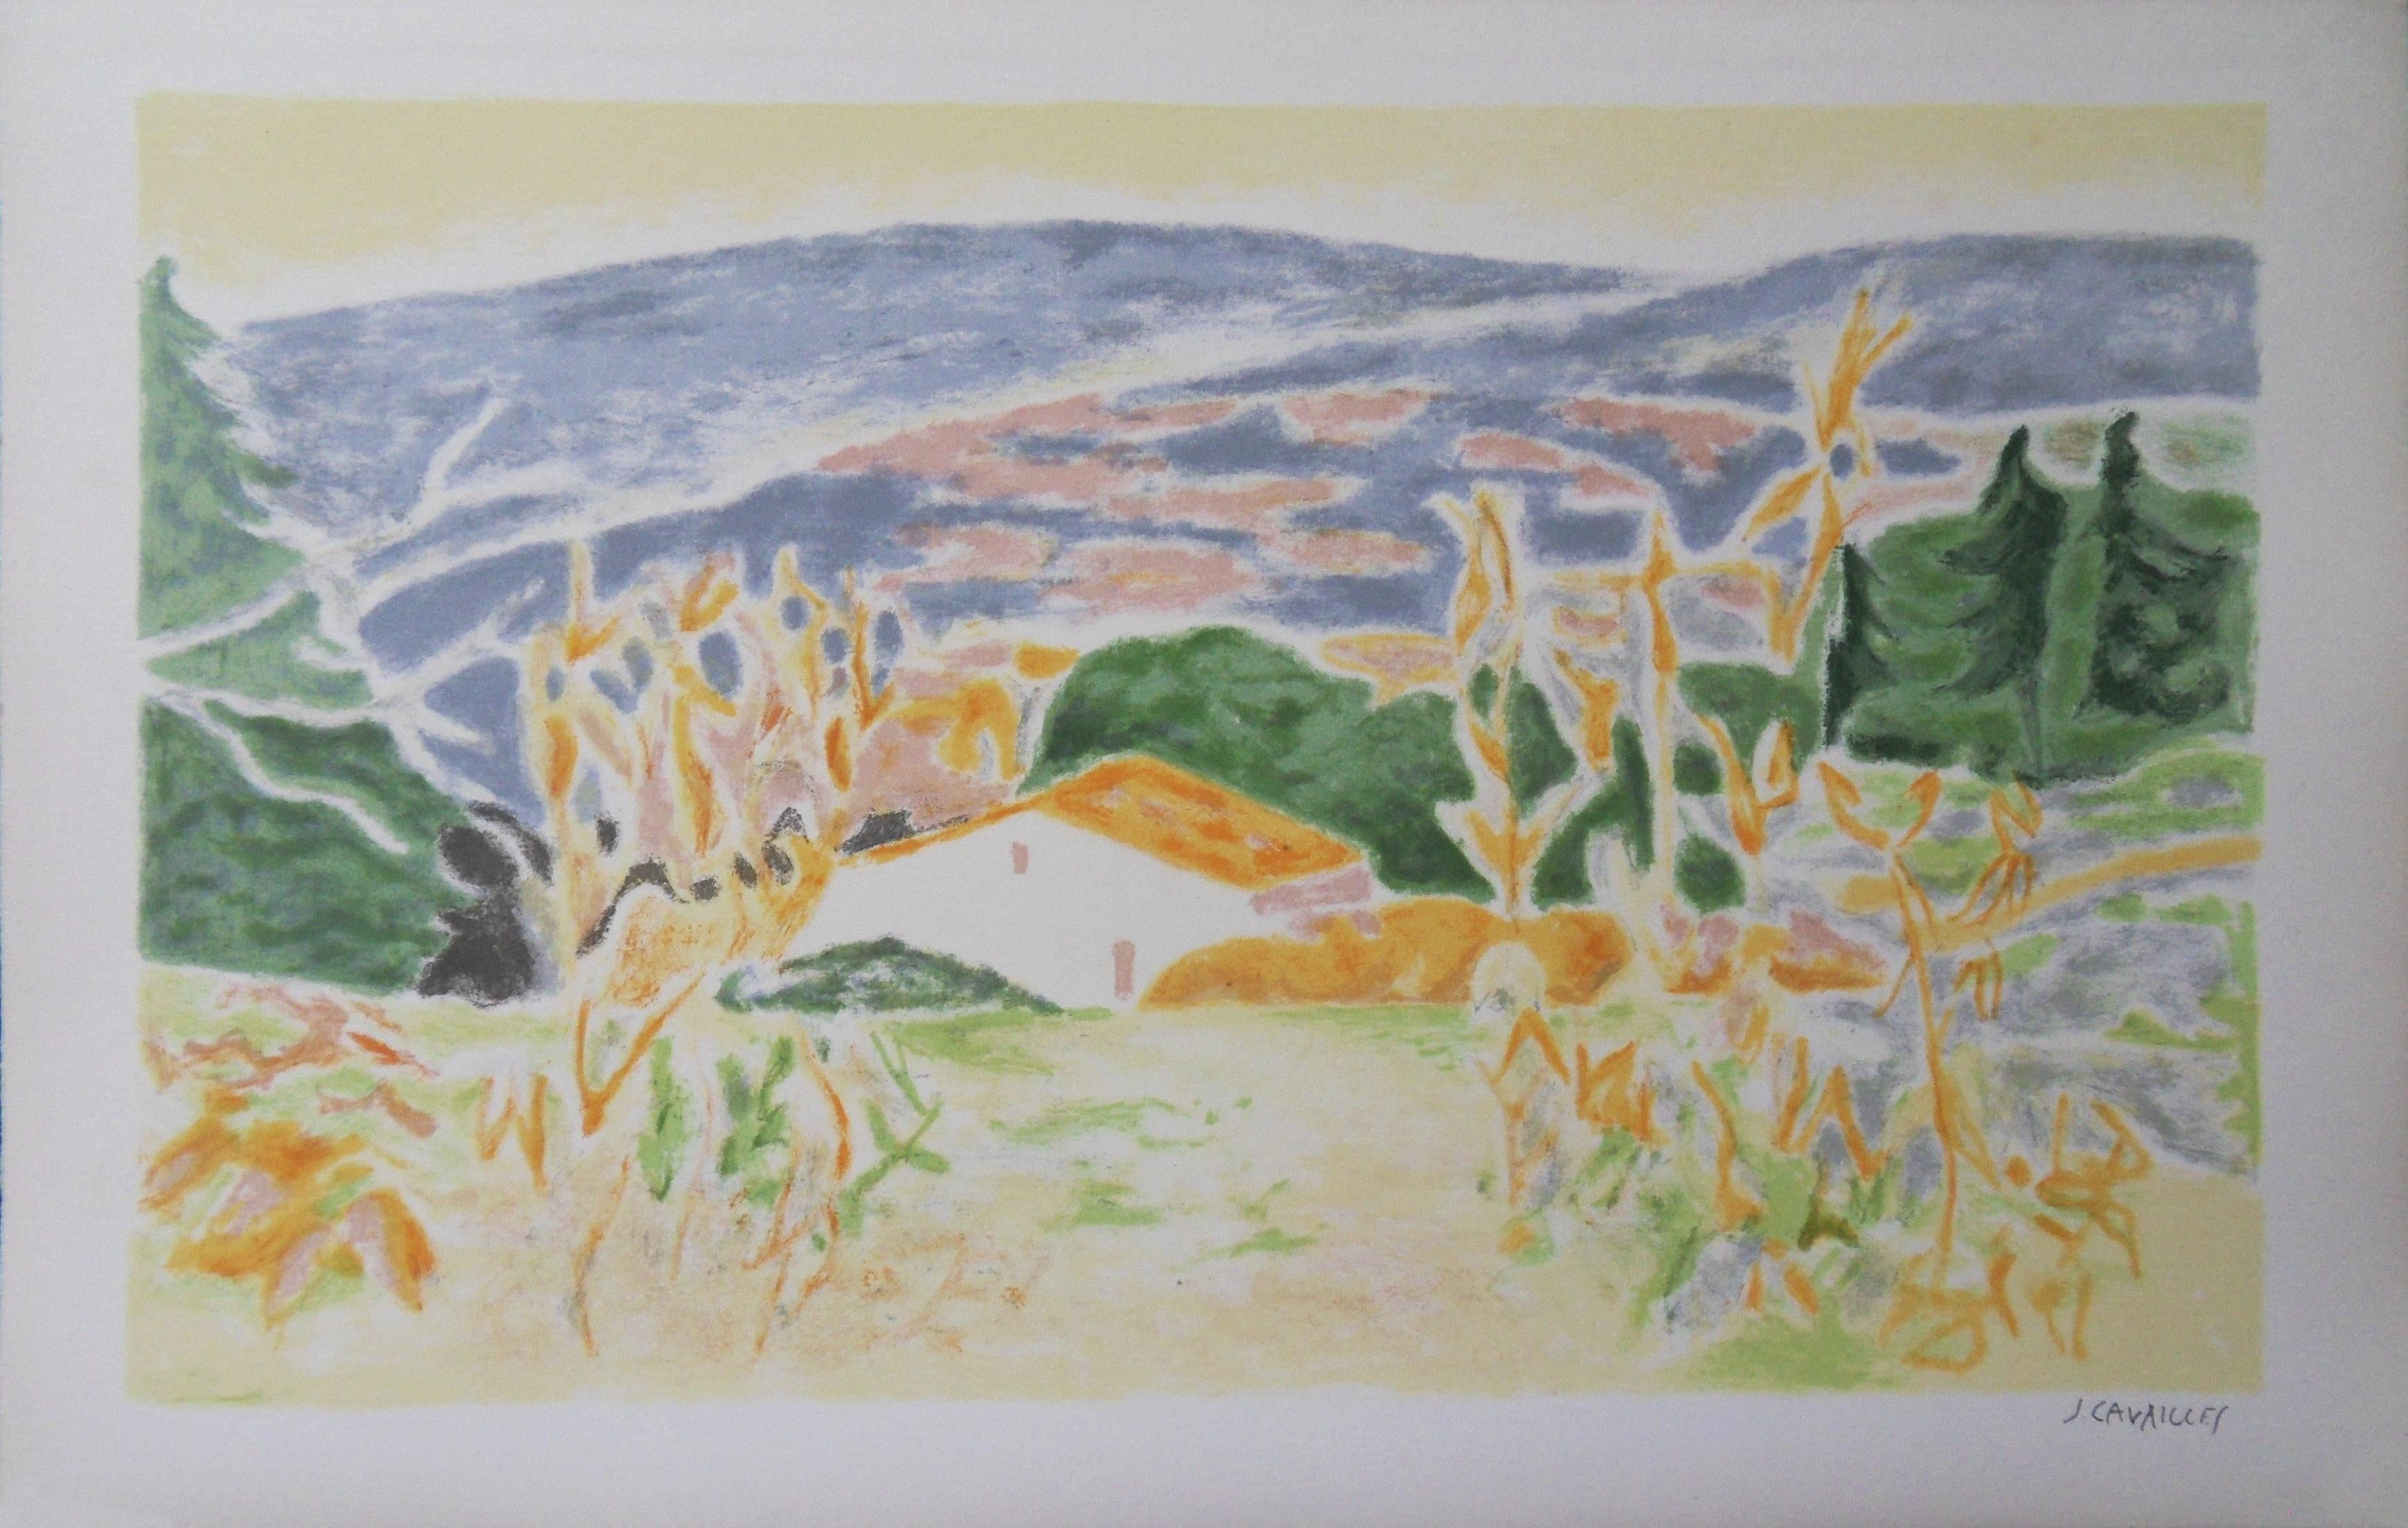 Landscape in Provence : The Old House - Original lithograph, Handsigned